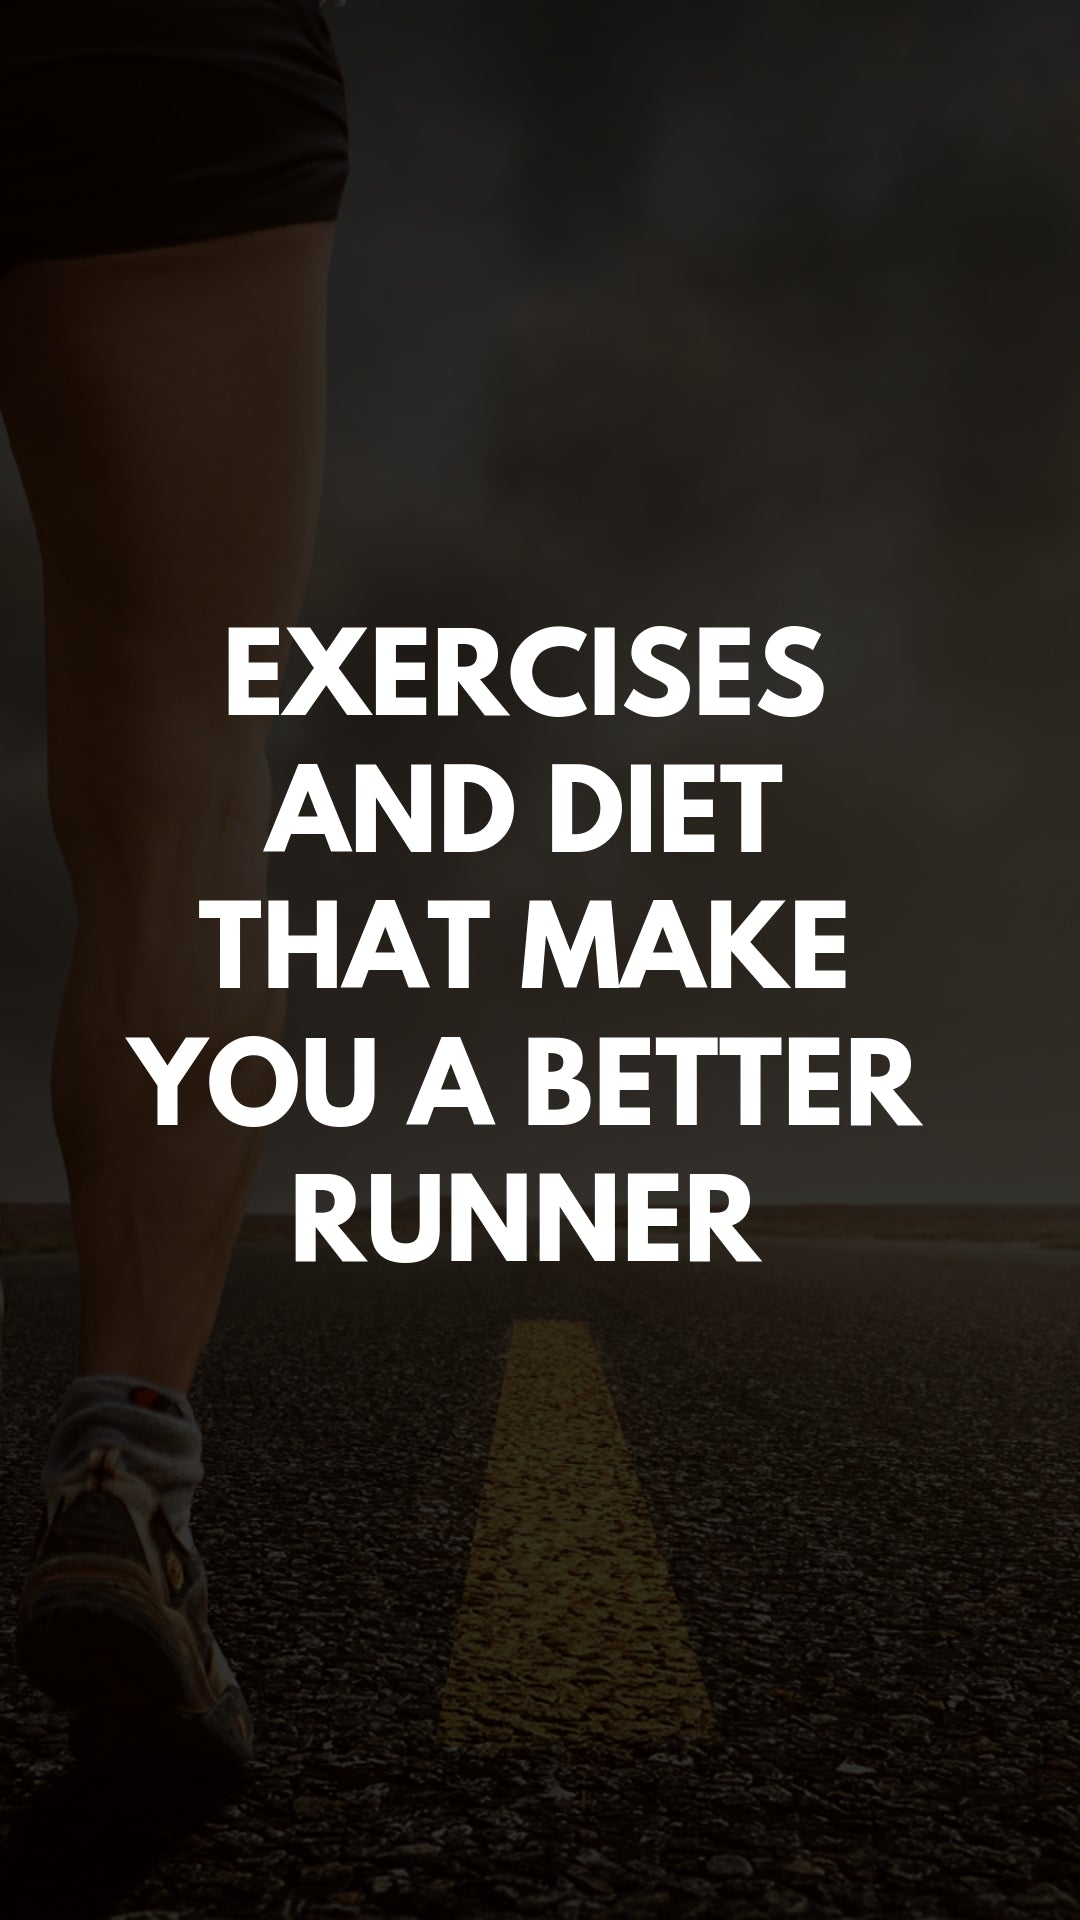 Exercises and Diet That Make You a Better Runner